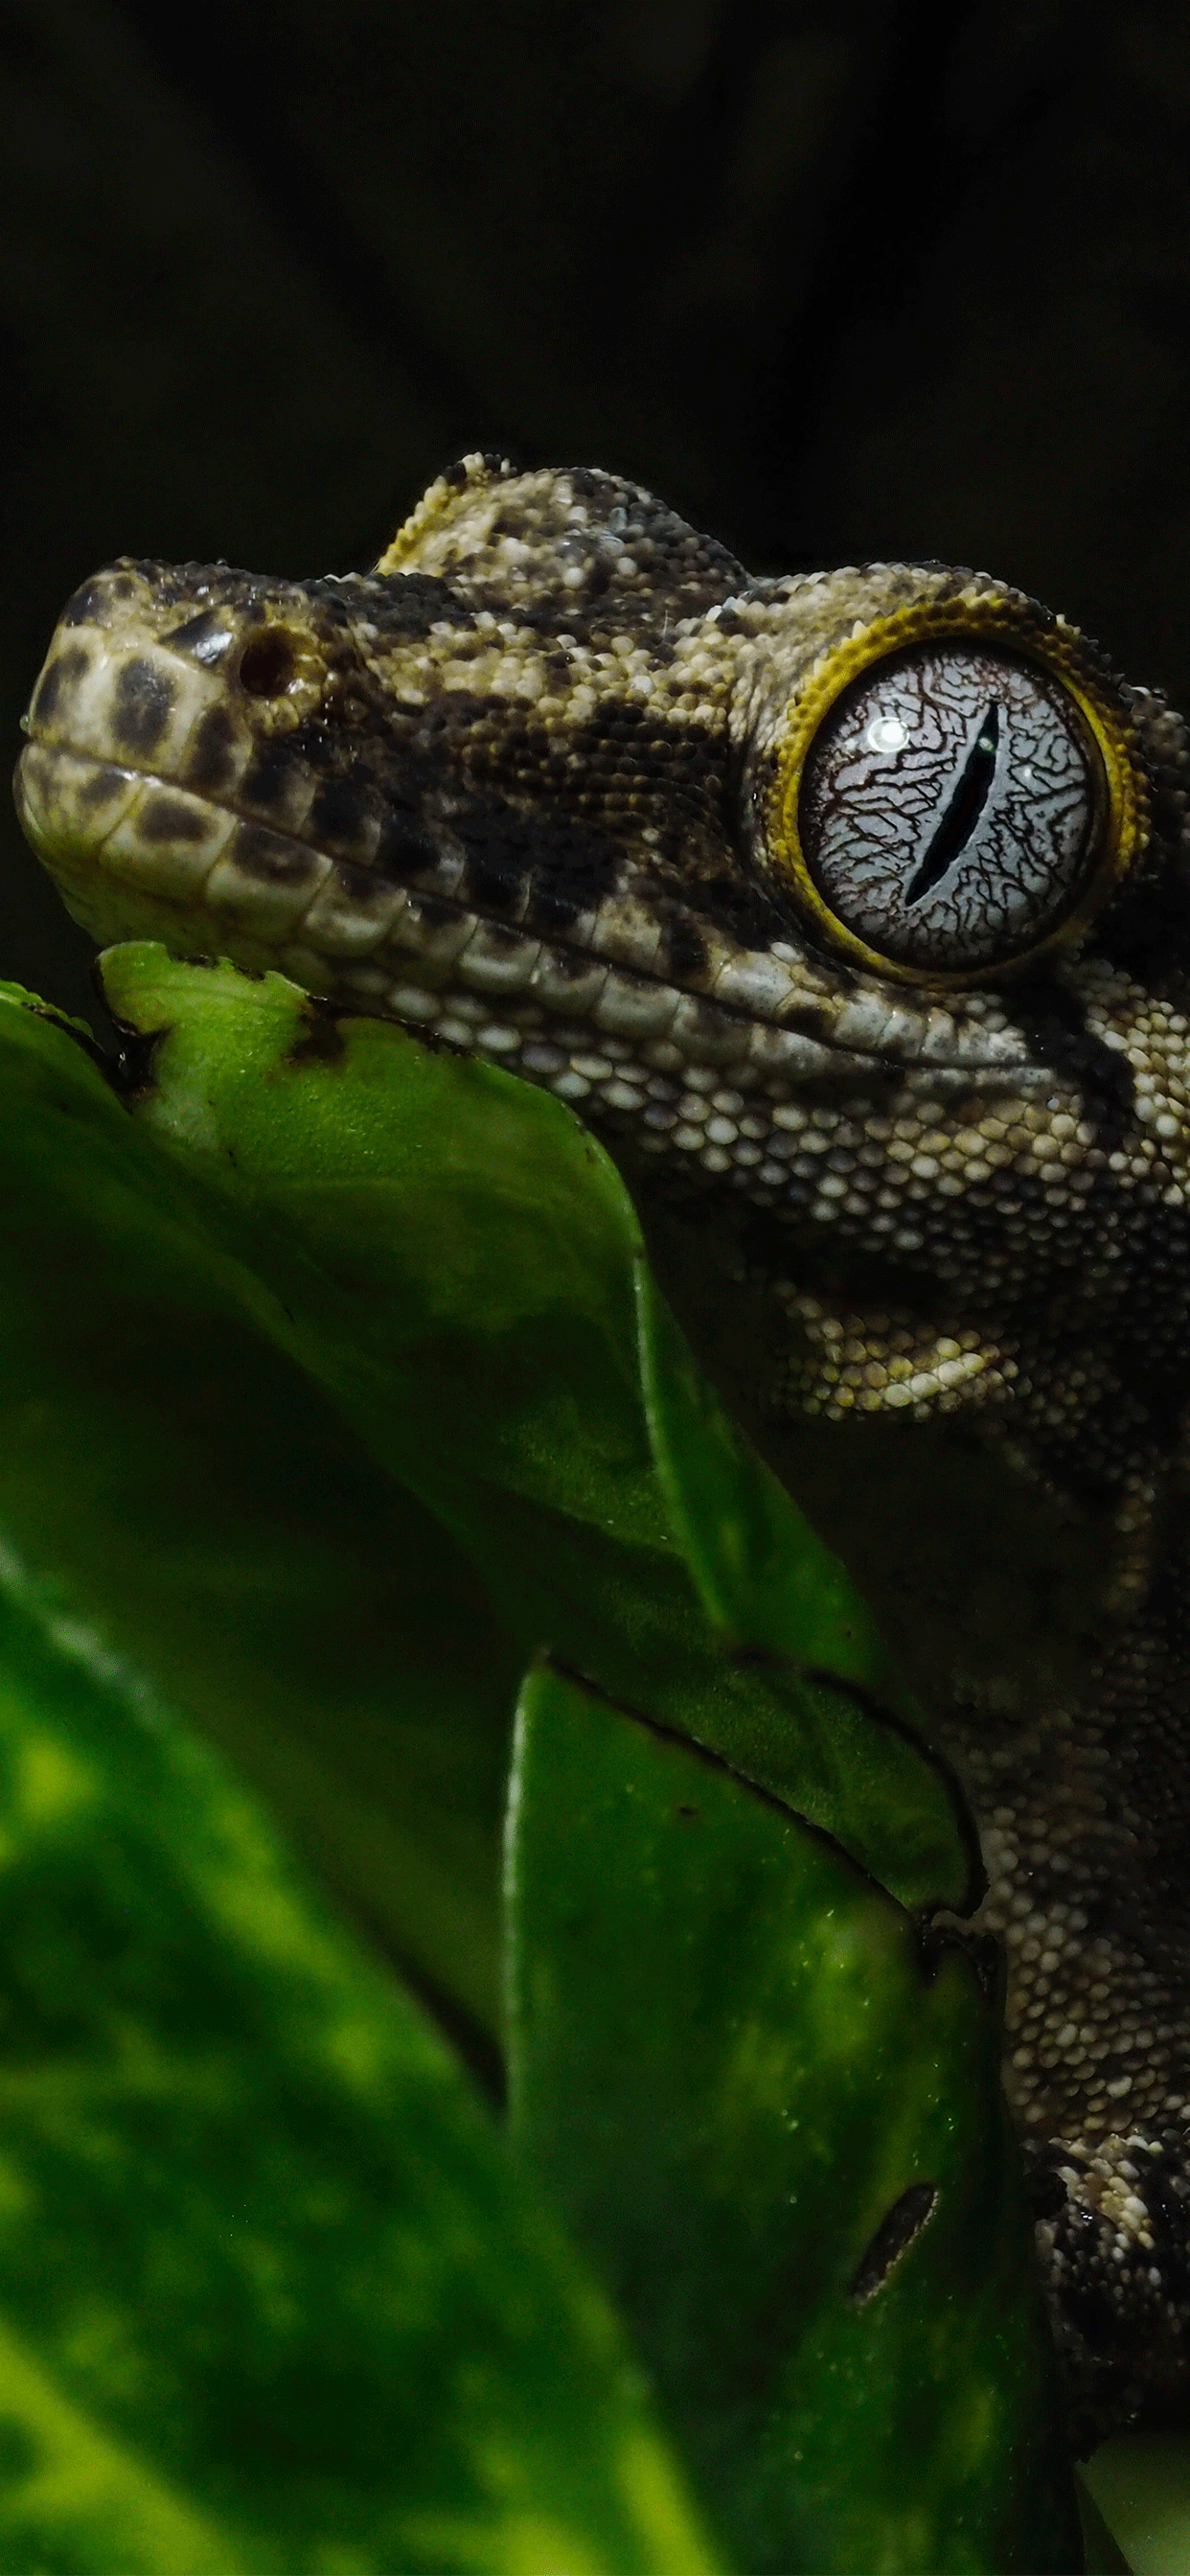 Reptiles Wallpaper para iPhone X, 8, 7, 6 - Descarga gratis en 3Wallpapers